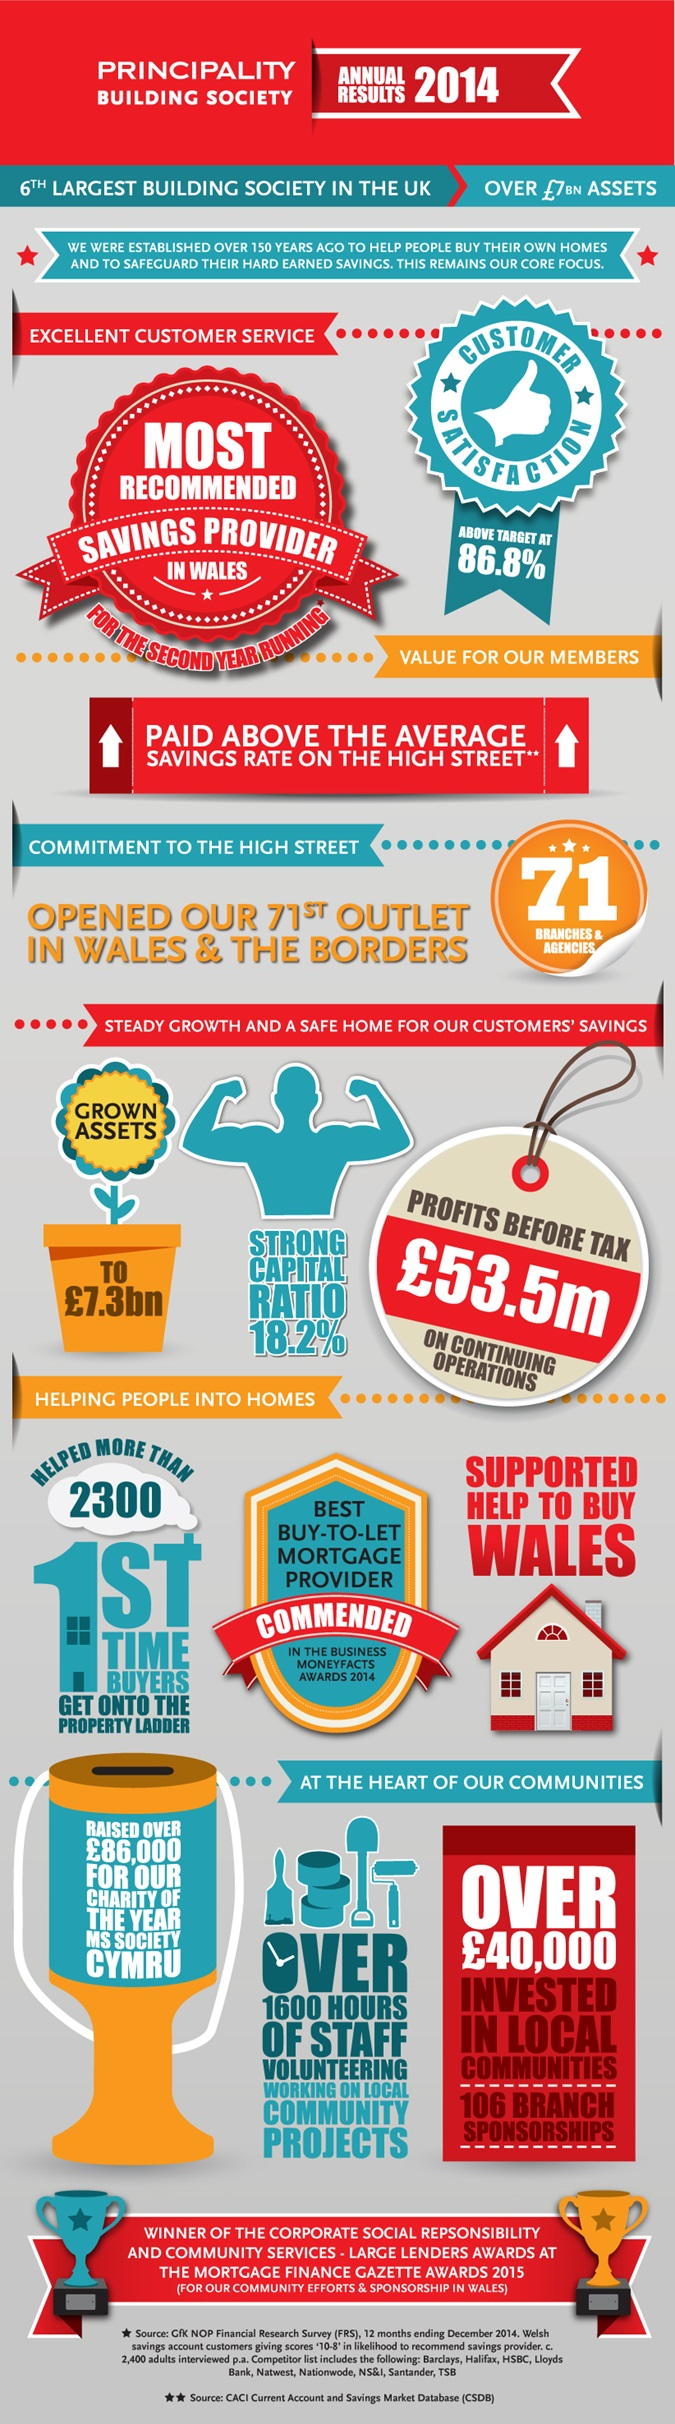 Annual Results 2014 Infographic